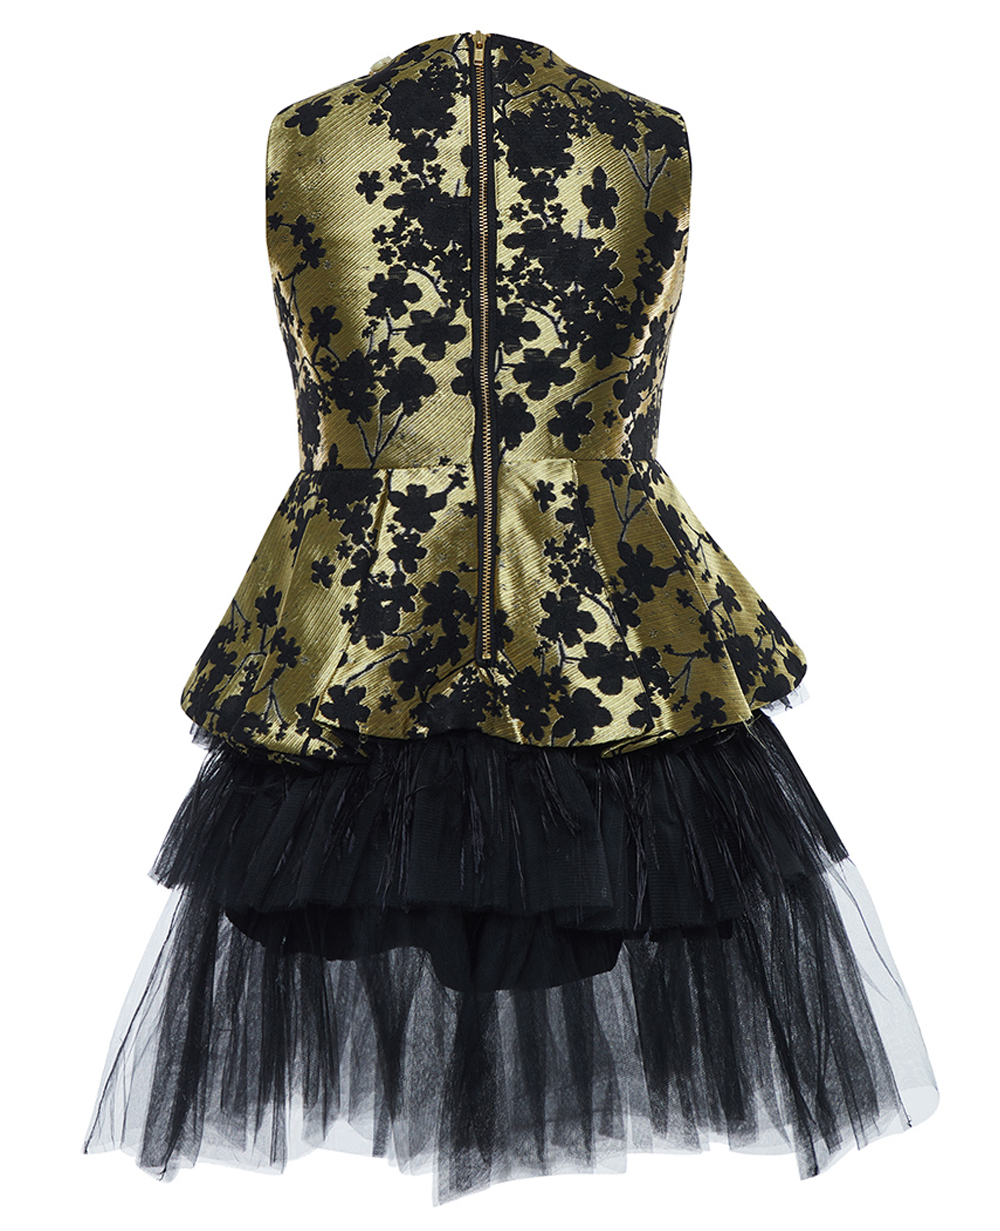 Black & Gold Devine Dress